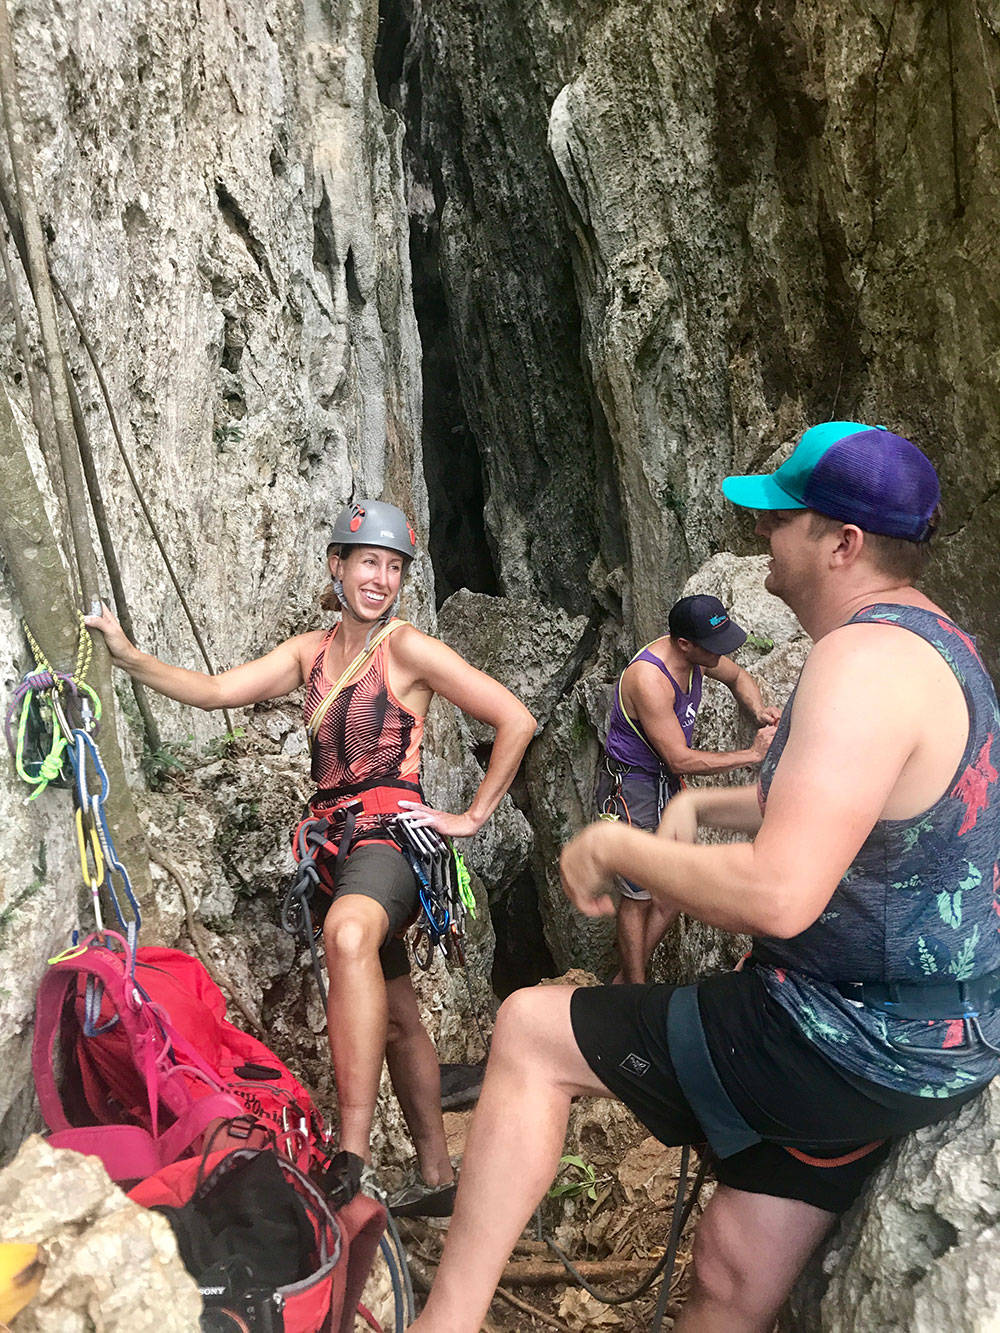 Sport climbing in Cueva Larga, in Mogote del Valle area of Cuba.